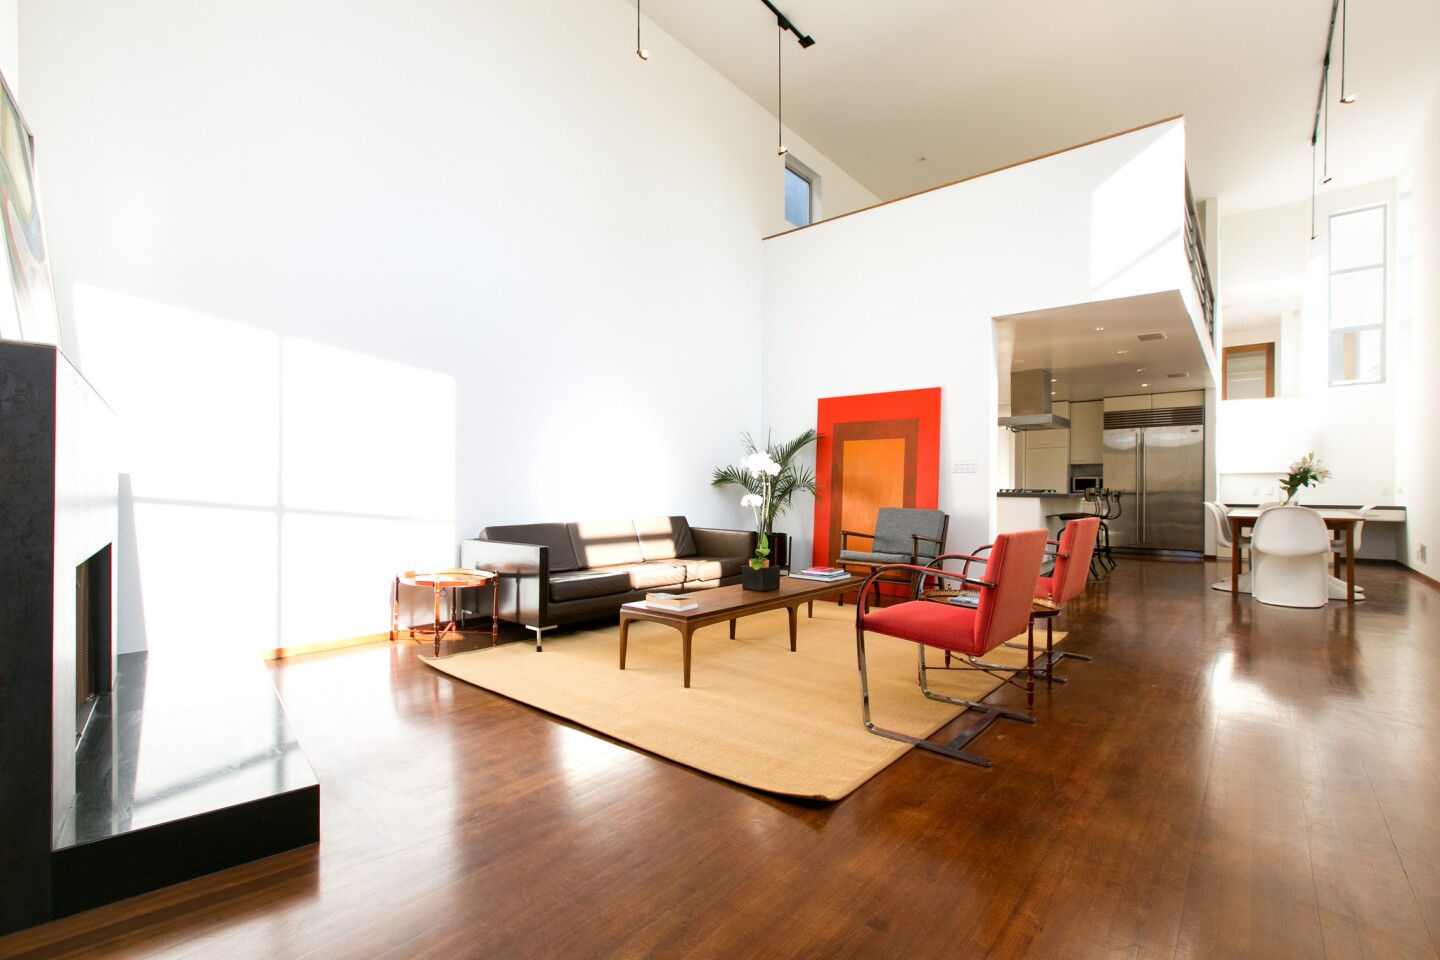 Home of the Day: Loft living in Venice